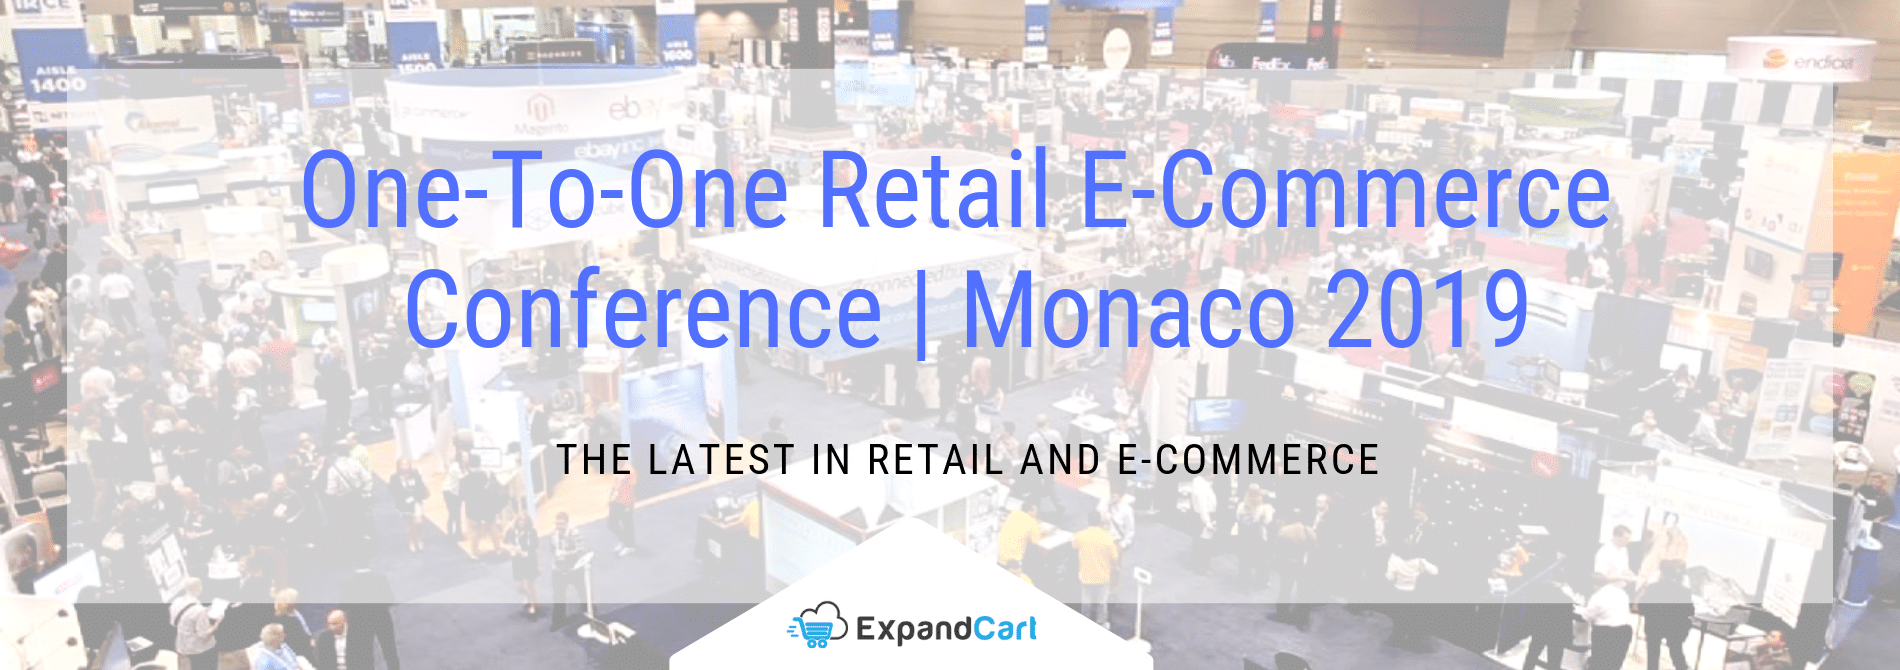 One-To-One Retail E-Commerce Conference | Monaco 2019: The Latest in Retail!